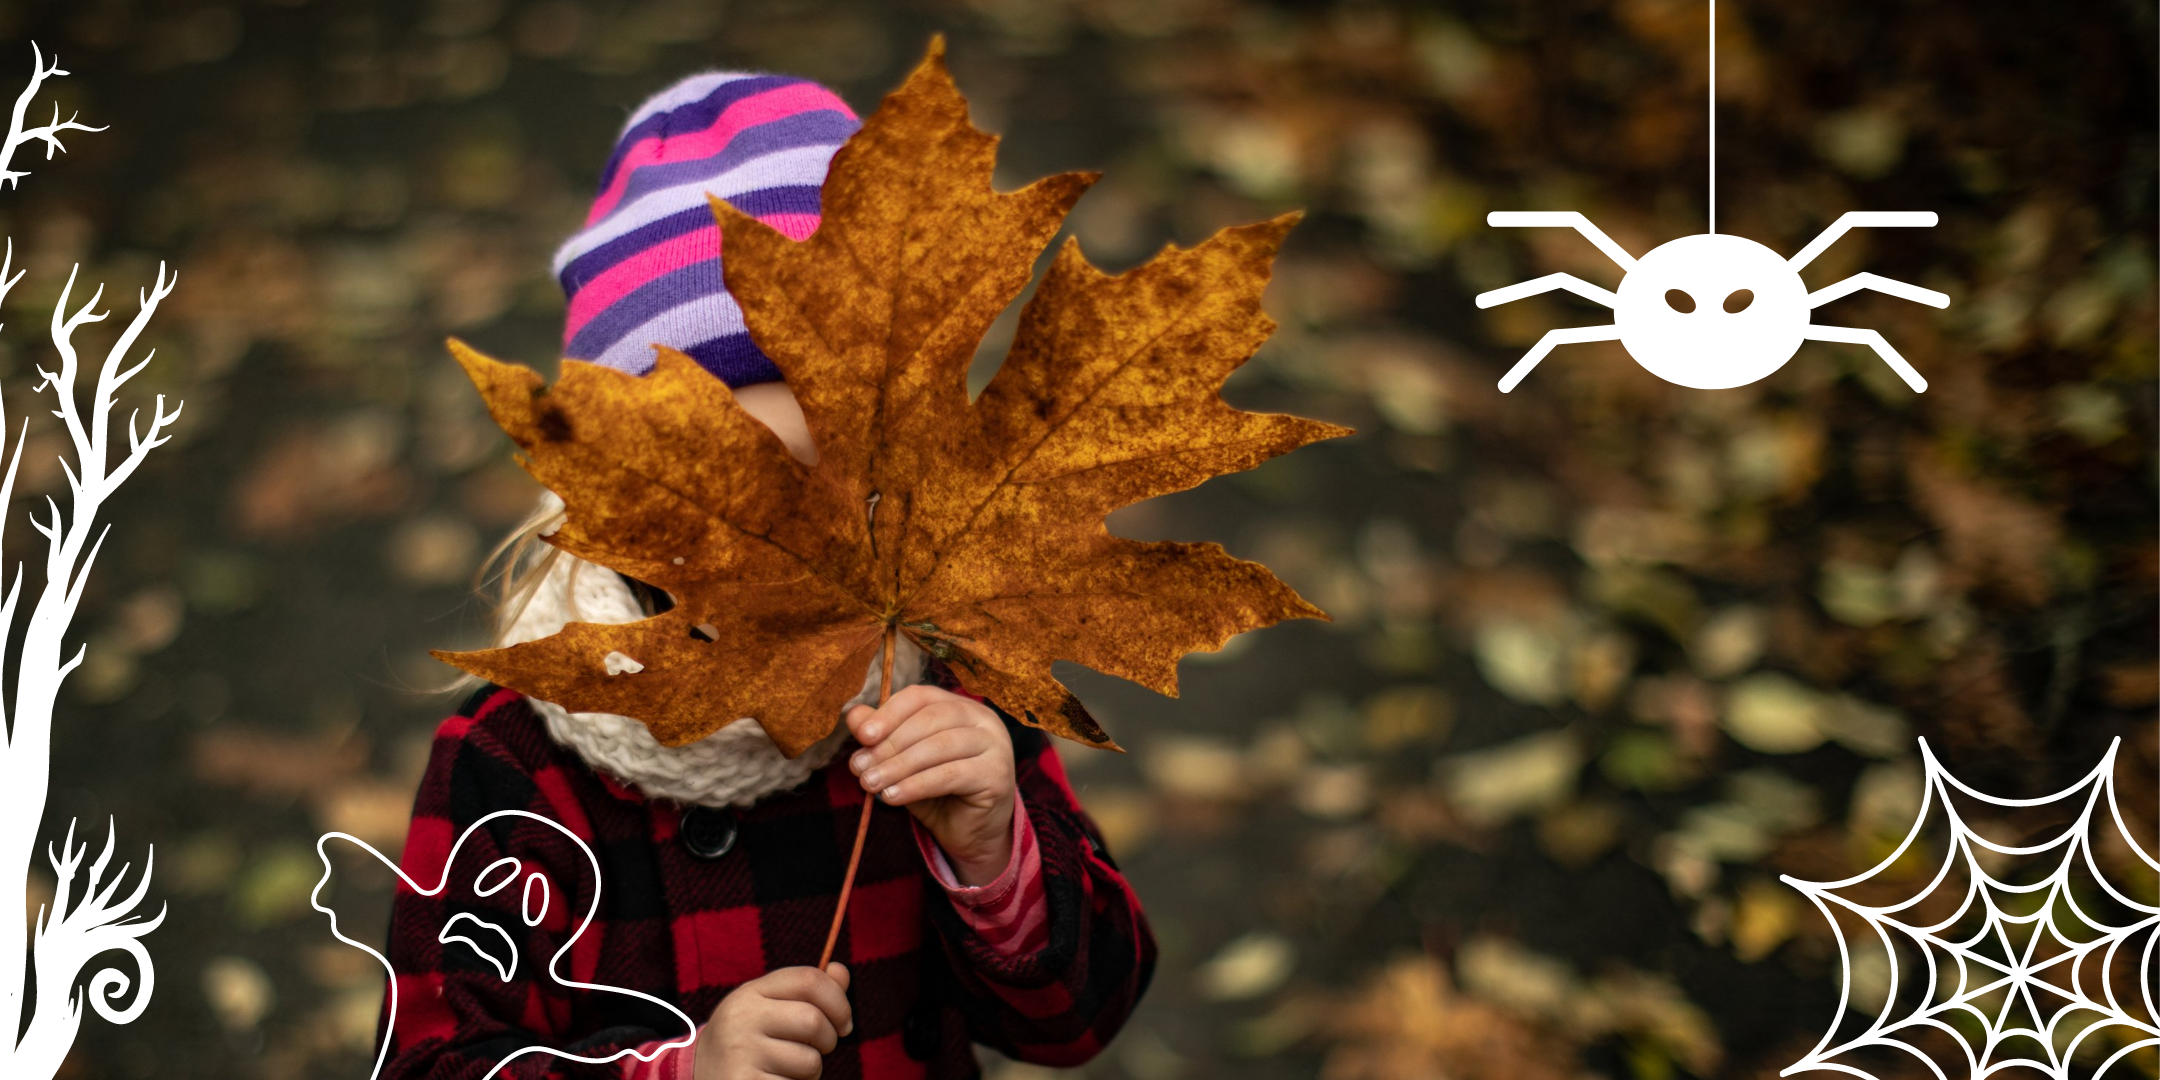 A child holds a large maple leaf up to their face. Halloween-themed illustrations, including a tree, ghost, cobweb, and spider, are overlaid on the image.